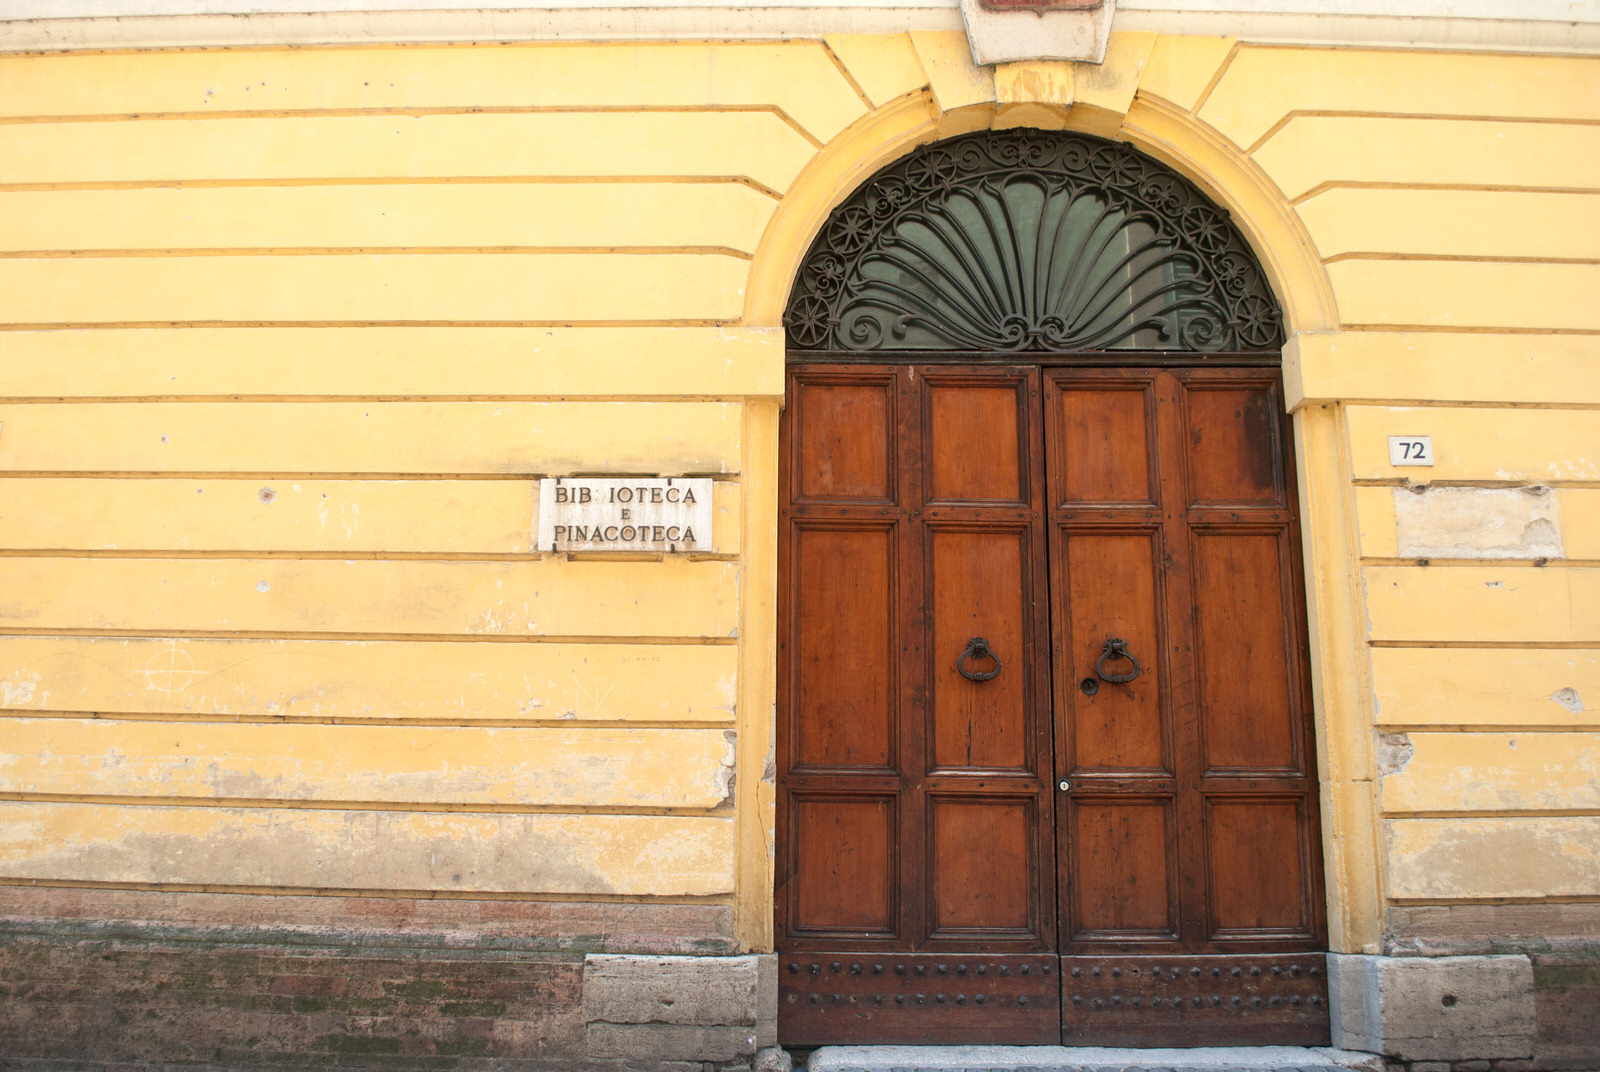 Door to a Pinacoteca in Bevagna Italy